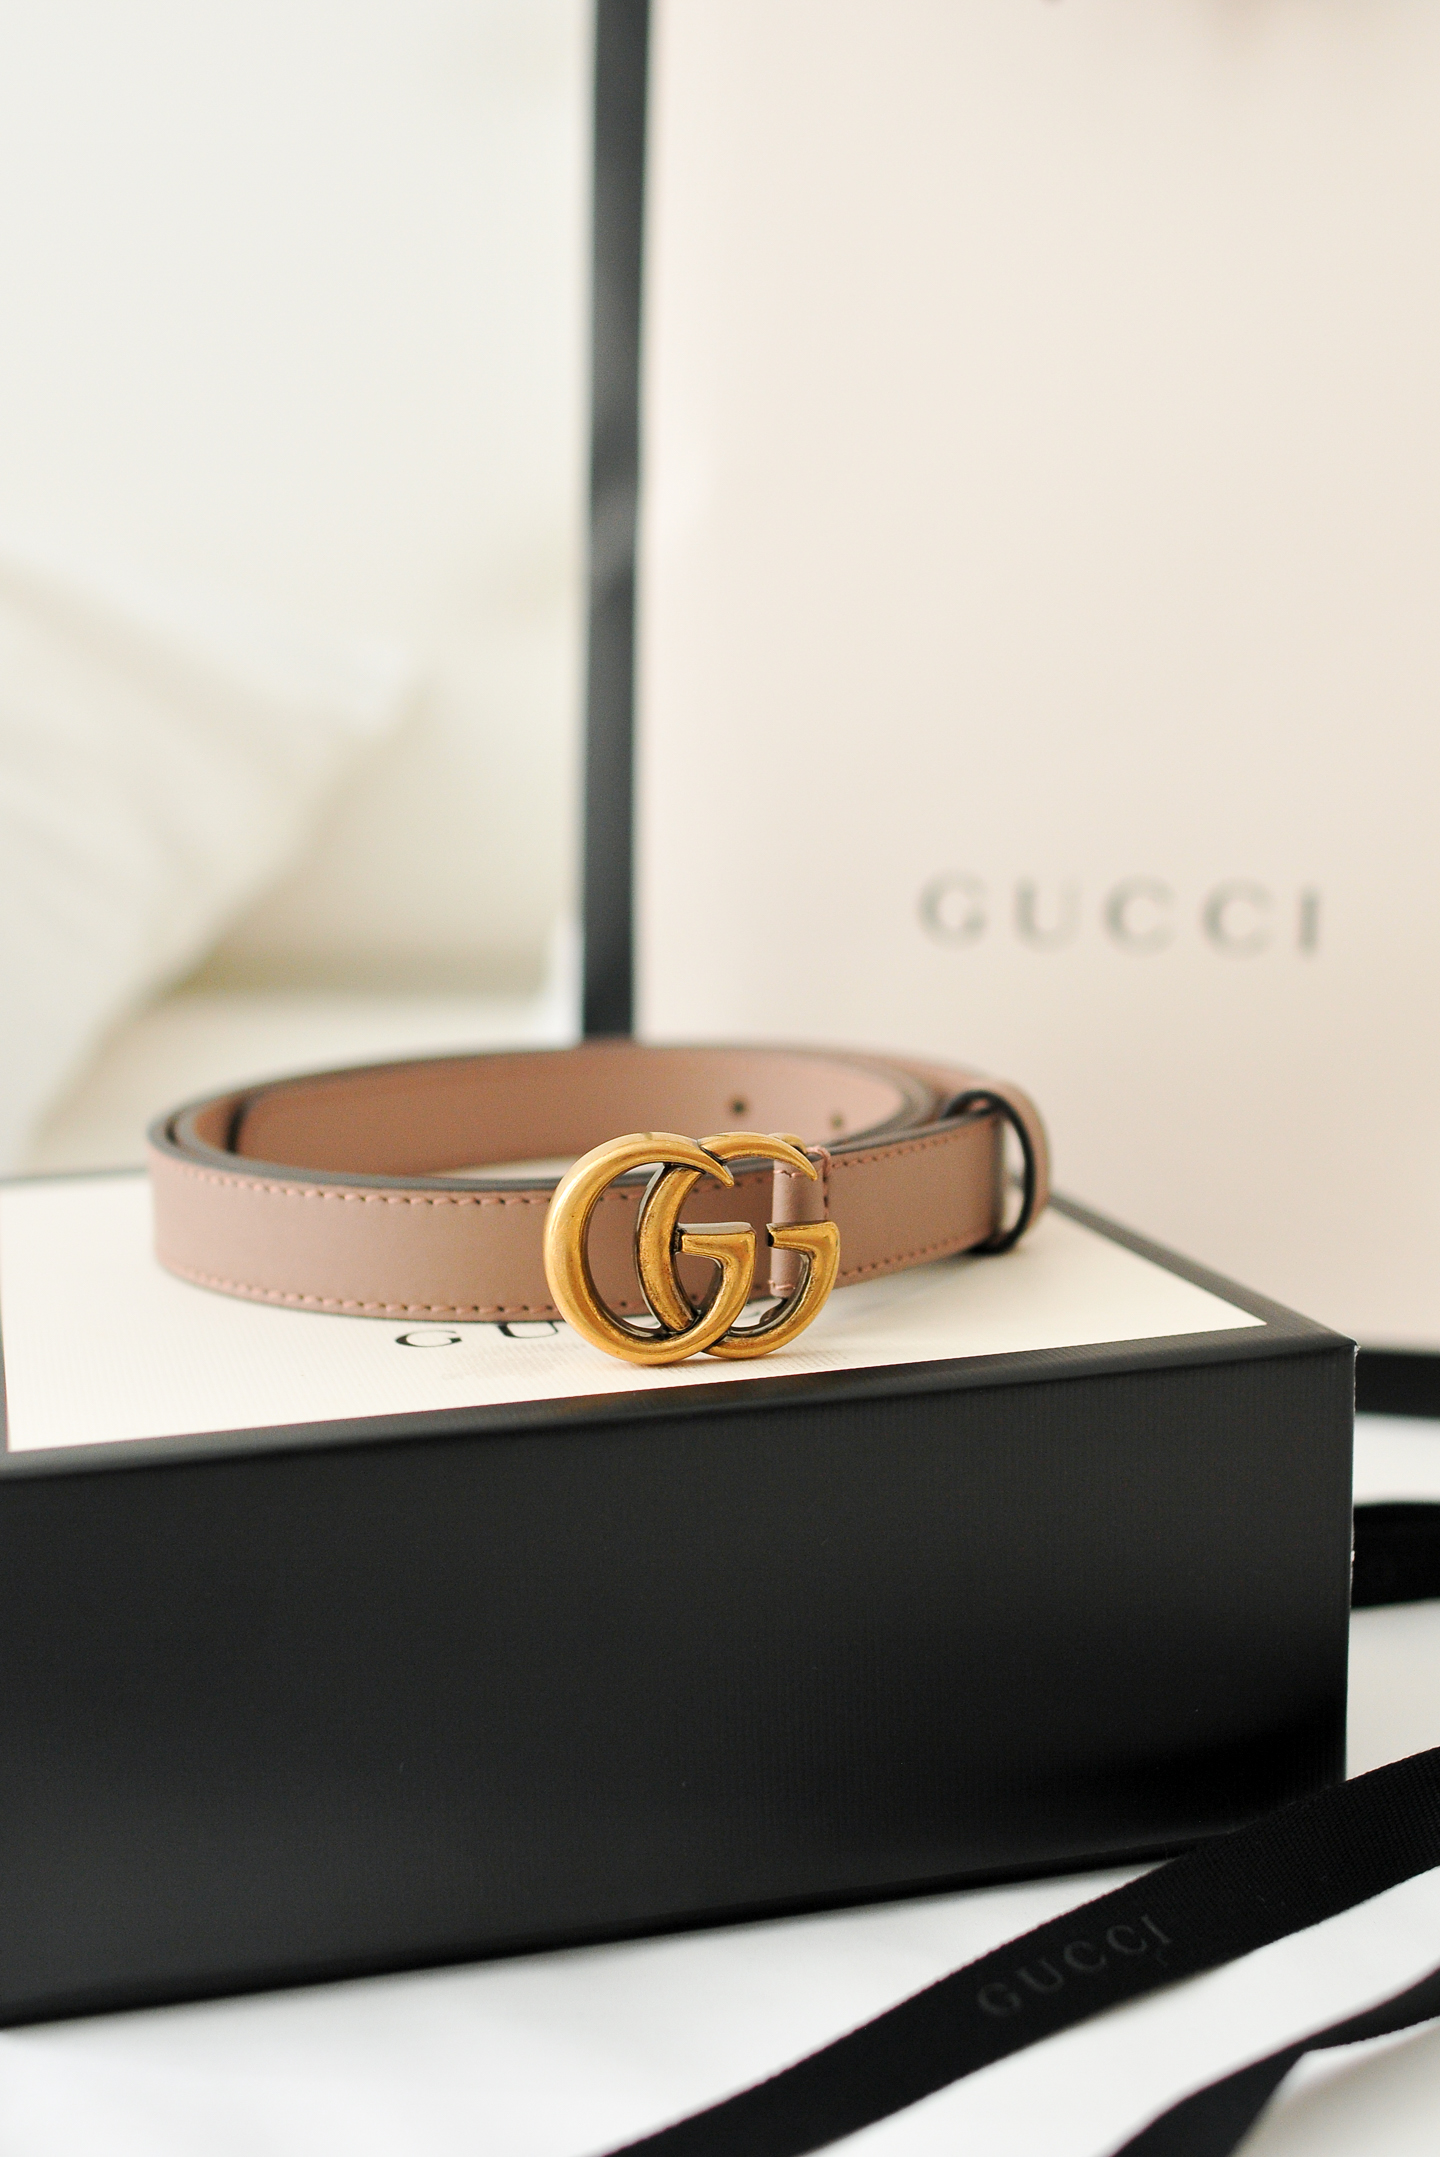 Gucci marmont belt pink leather Double G buckle small gucci belt